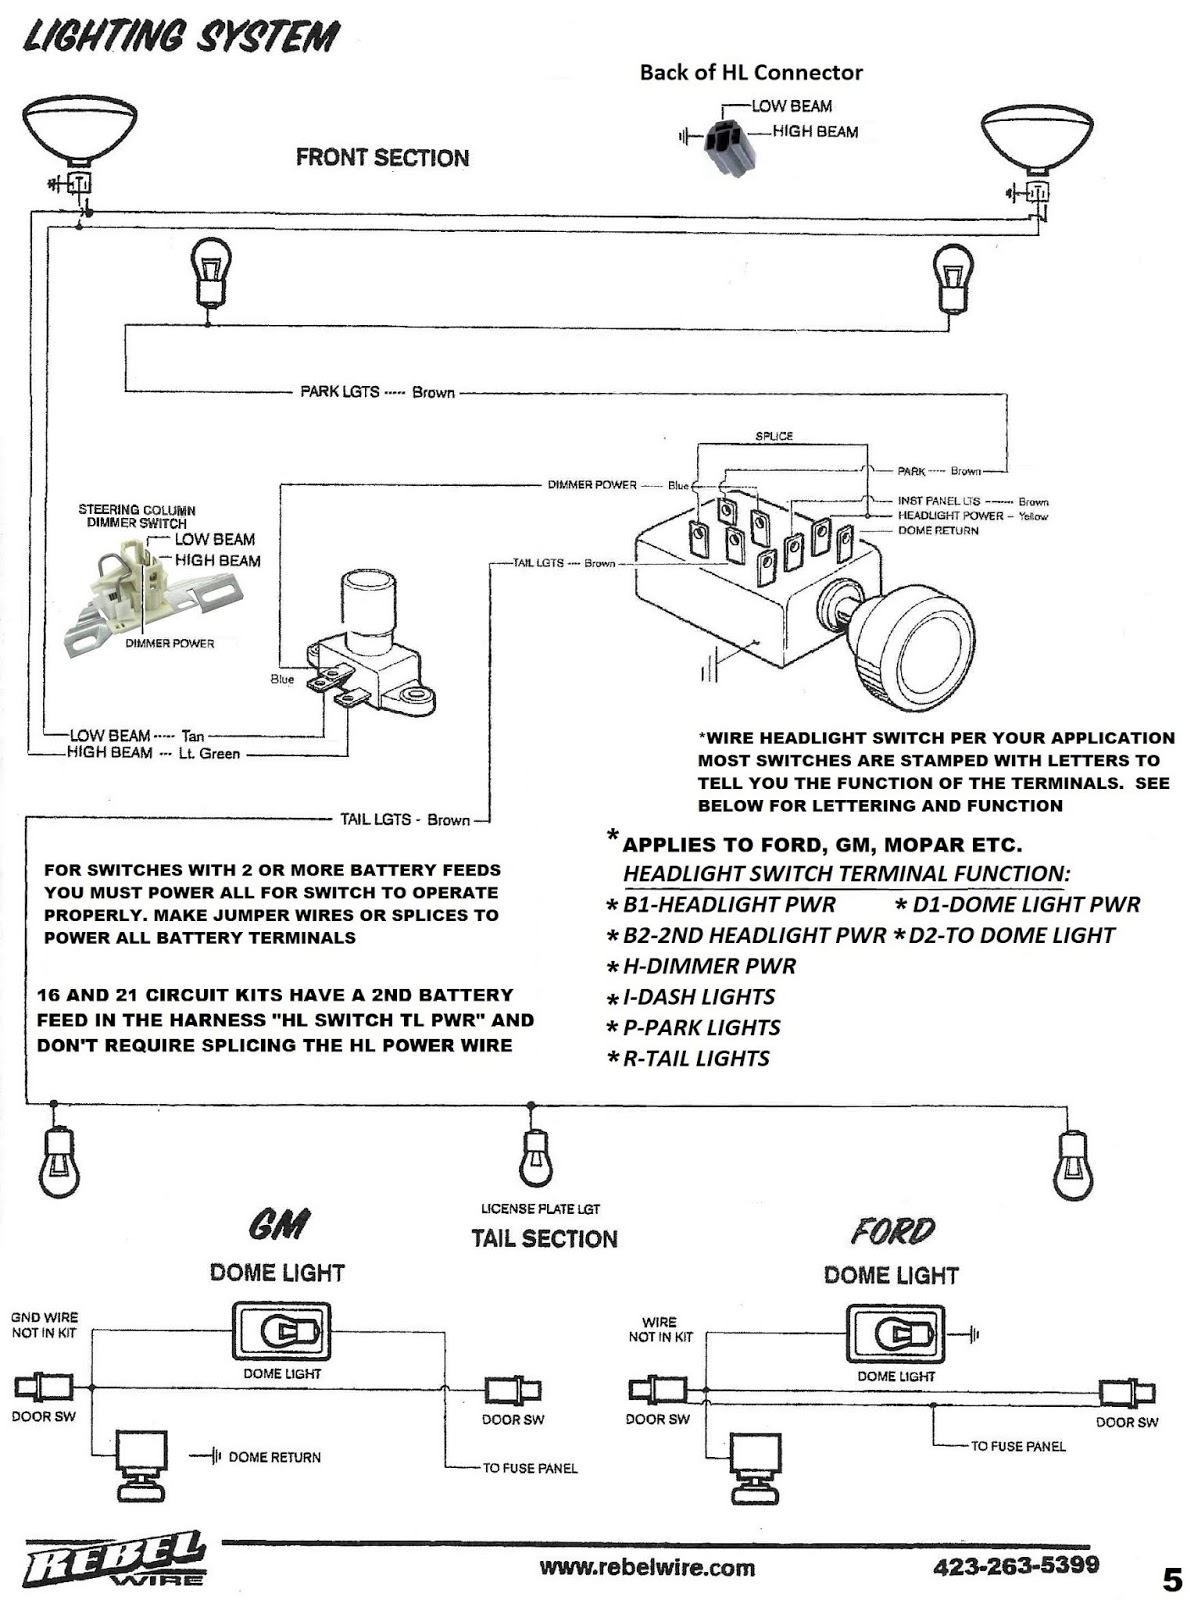 Model A Ford Headlight Switch Wiring Diagram | Wiring Diagram on jeep cj headlight switch diagram, headlight socket diagram, ford headlight adjustment, 1956 chevy headlight switch diagram, ford rear brakes diagram, ford wiring schematic, ford electrical wiring diagrams, ford truck electrical diagrams, ford f100 wiring diagrams, ford 302 distributor wiring, ford radiator diagram, ford headlight parts, ford headlight assembly, ford ignition coil diagram, ford gauge diagram, ford headlight relay, ford abs brake problems, ford headlight switch, ford f-250 electrical diagram, ford fuse diagram,